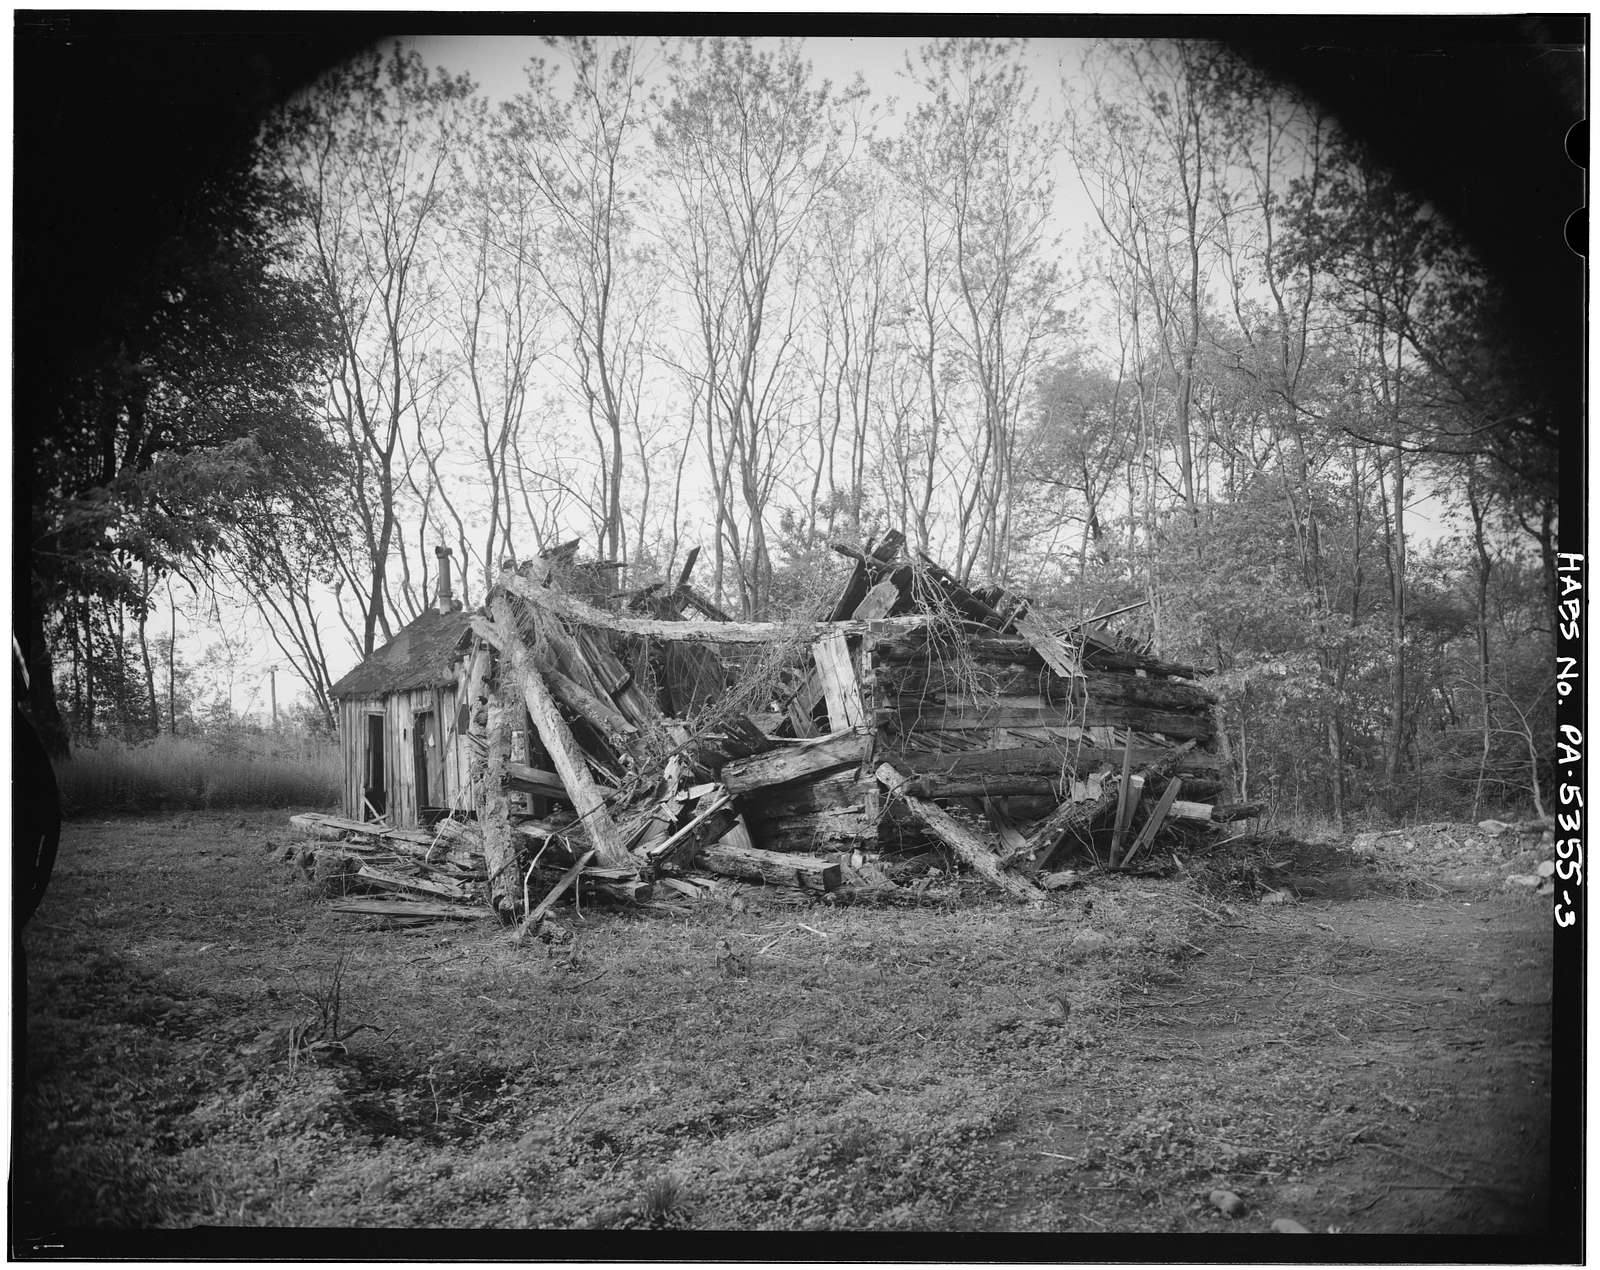 Gingher House (Ruins), Legislative Route 14010 (Boggs Township), Curtin, Centre County, PA